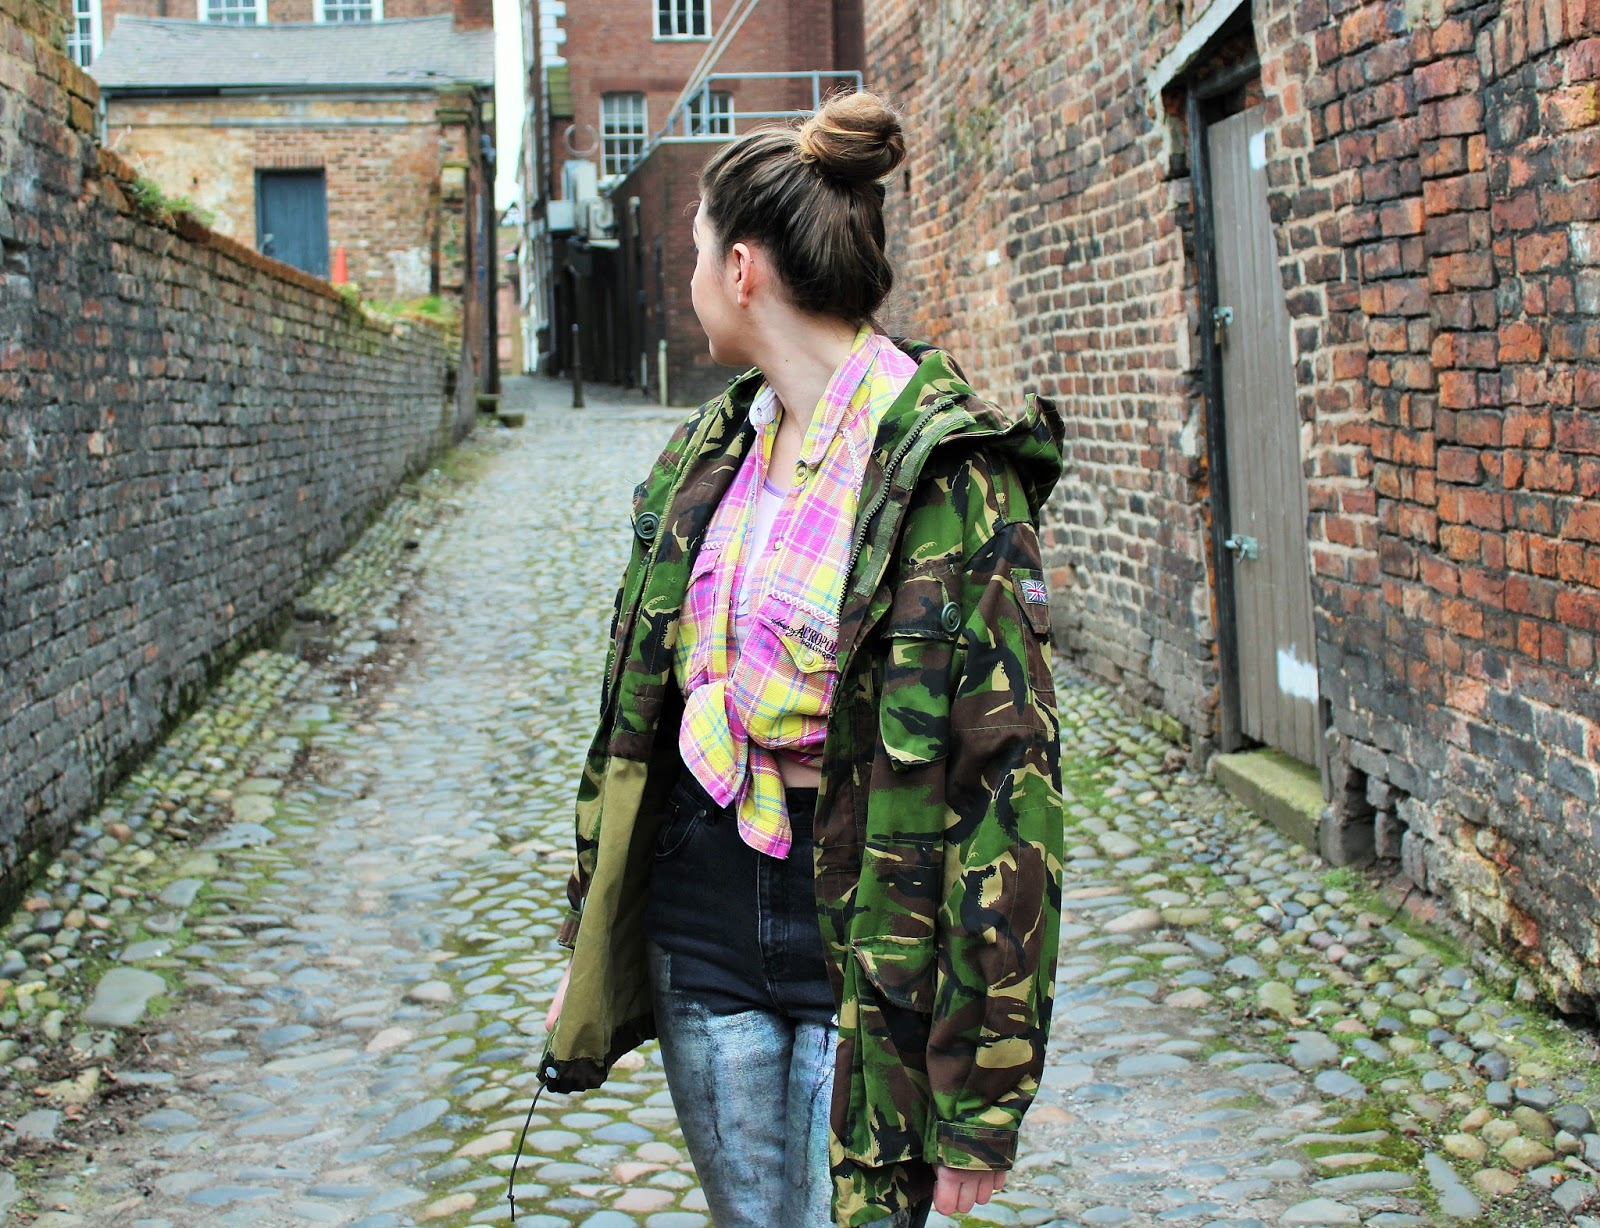 5e8e62e376b902 Plaid shirt - Vintage (Depop) Camo jacket - Vintage (Depop) Crop top  -  Yoins Metallic mom jeans - The Ragged Priest Some people would cringe at  the thought ...